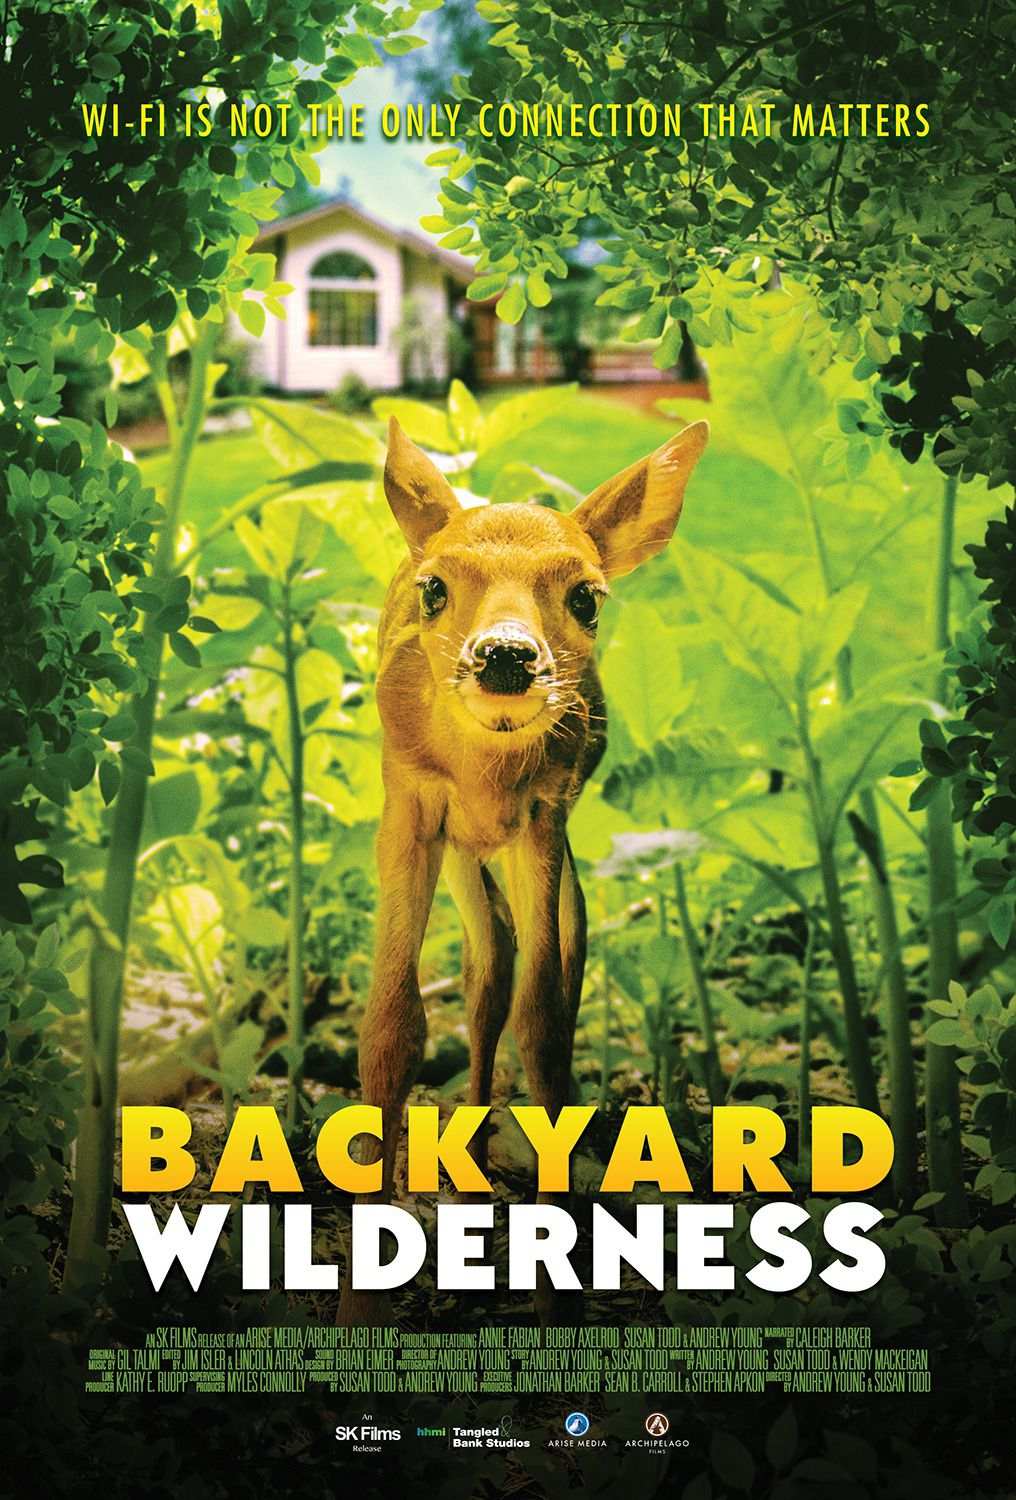 Backyard Wilderness - film cute poster 2018